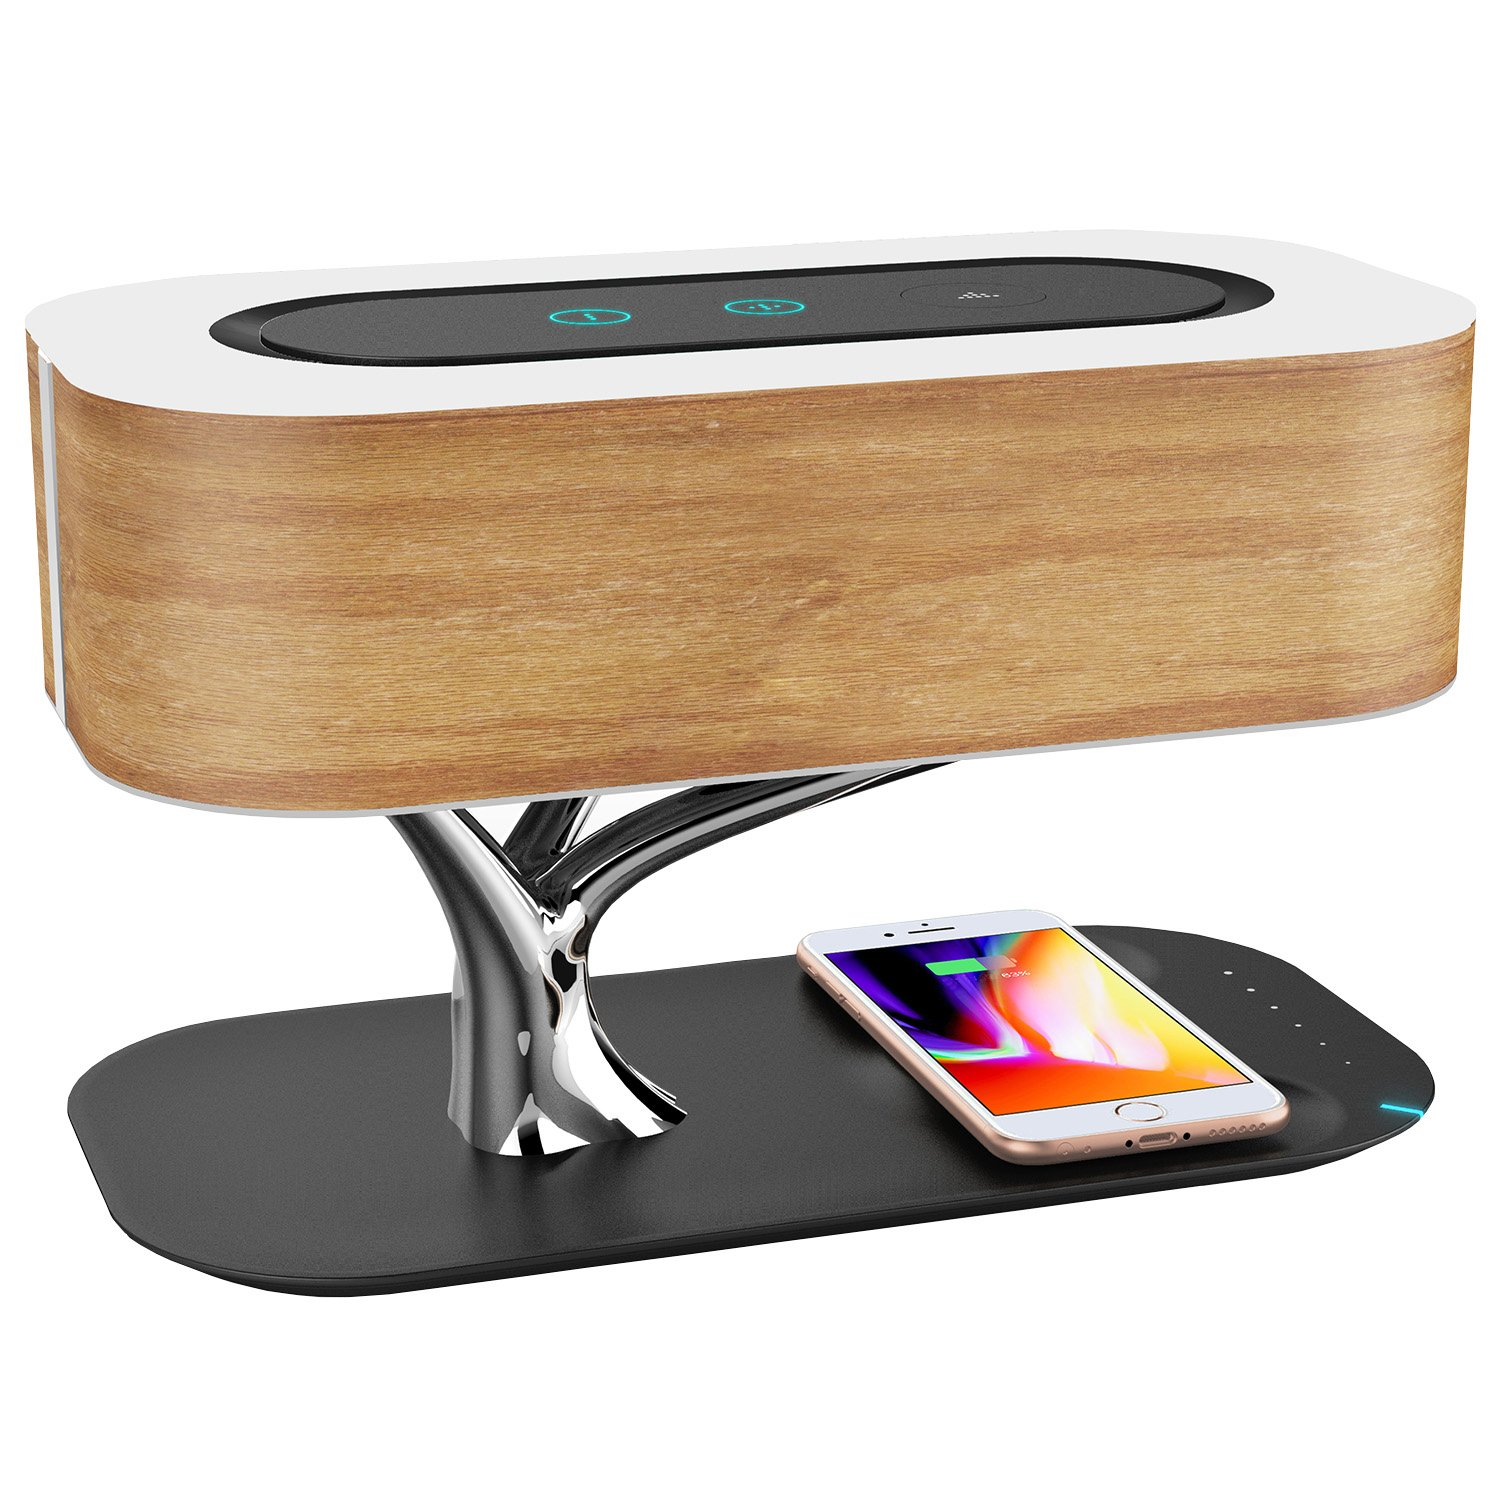 Ampulla Light of Tree Lamp with Bluetooth Speaker and Wireless Charger, Sleep Mode Stepless Dimming by Ampulla